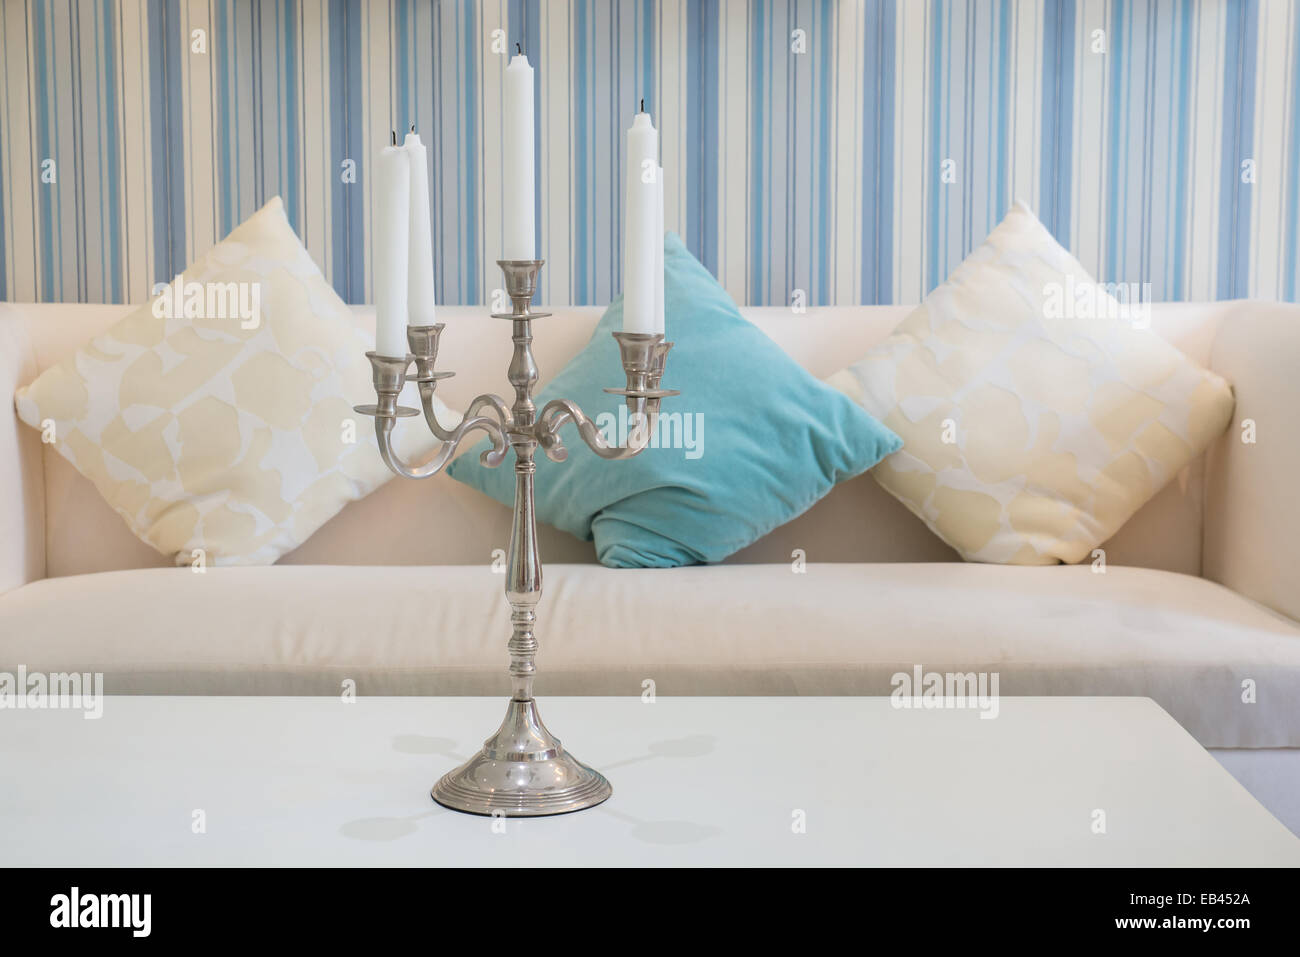 candlestick with five  candles on table with sofa in background - Stock Image